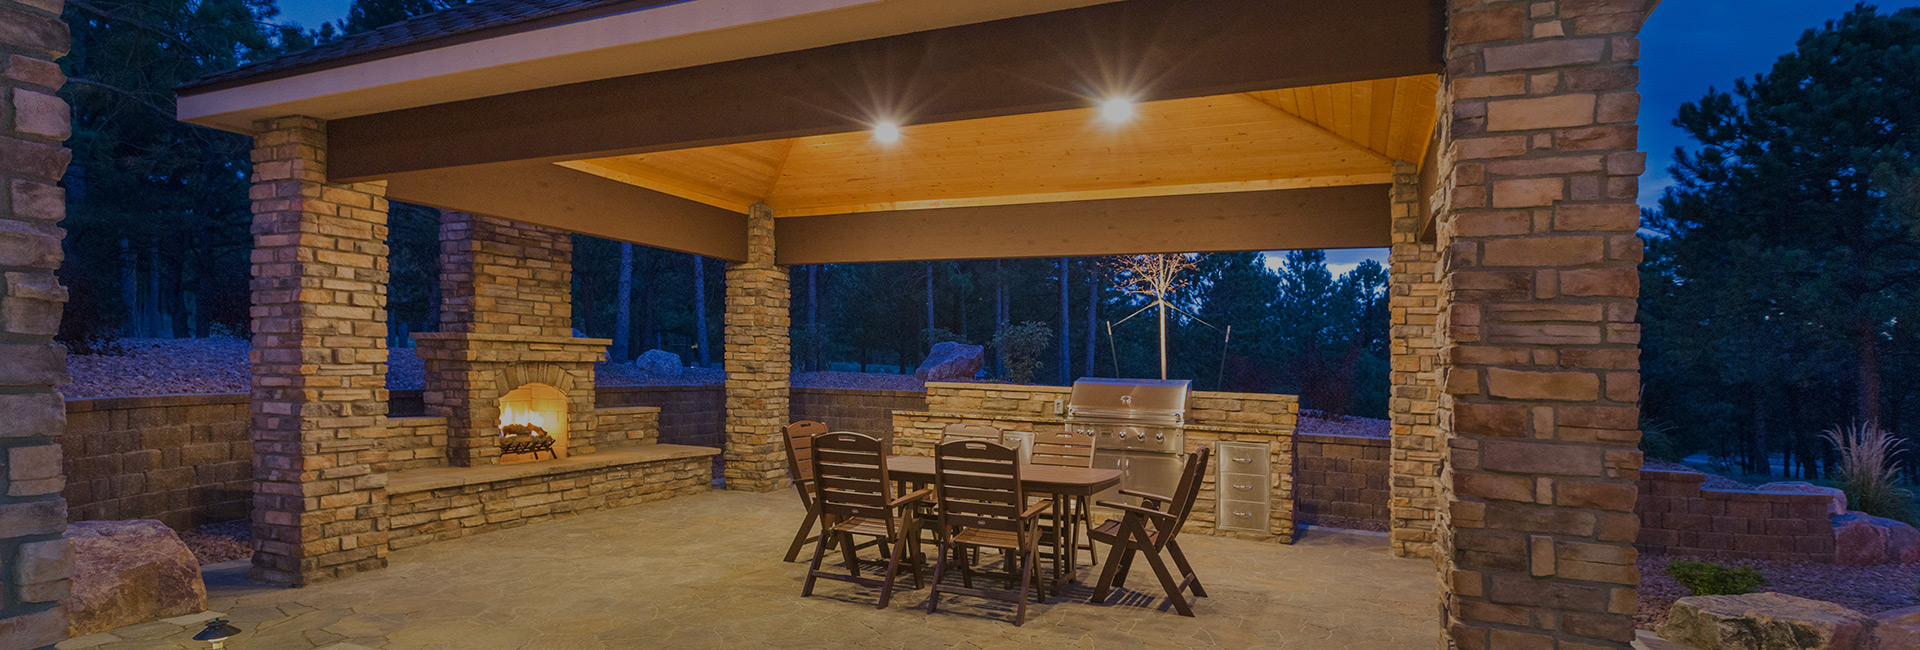 outdoor covered patio